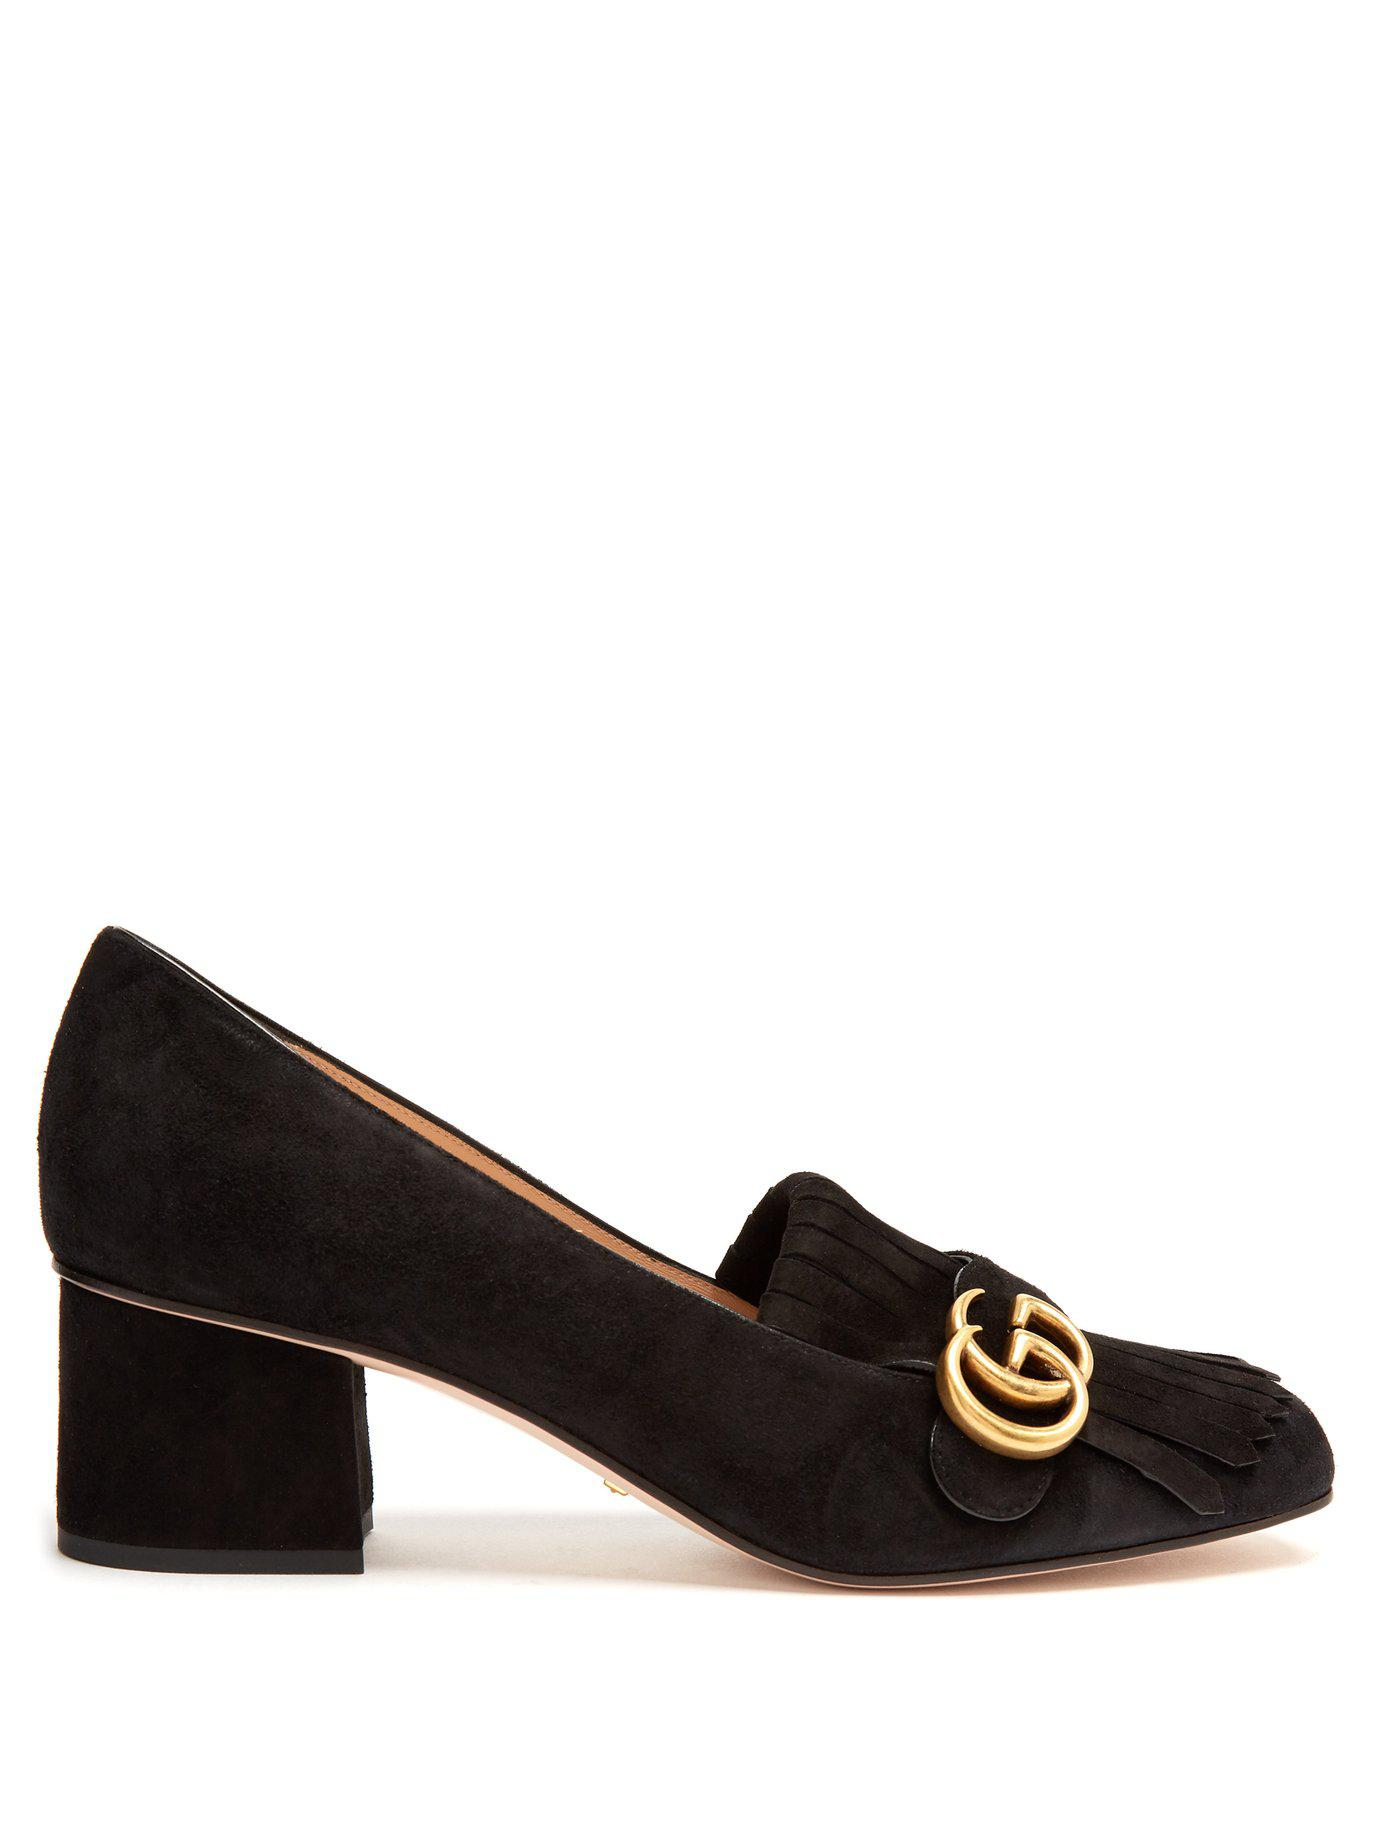 a4771739ab3 Lyst - Gucci Marmont Fringed Suede Loafers in Black - Save 6%